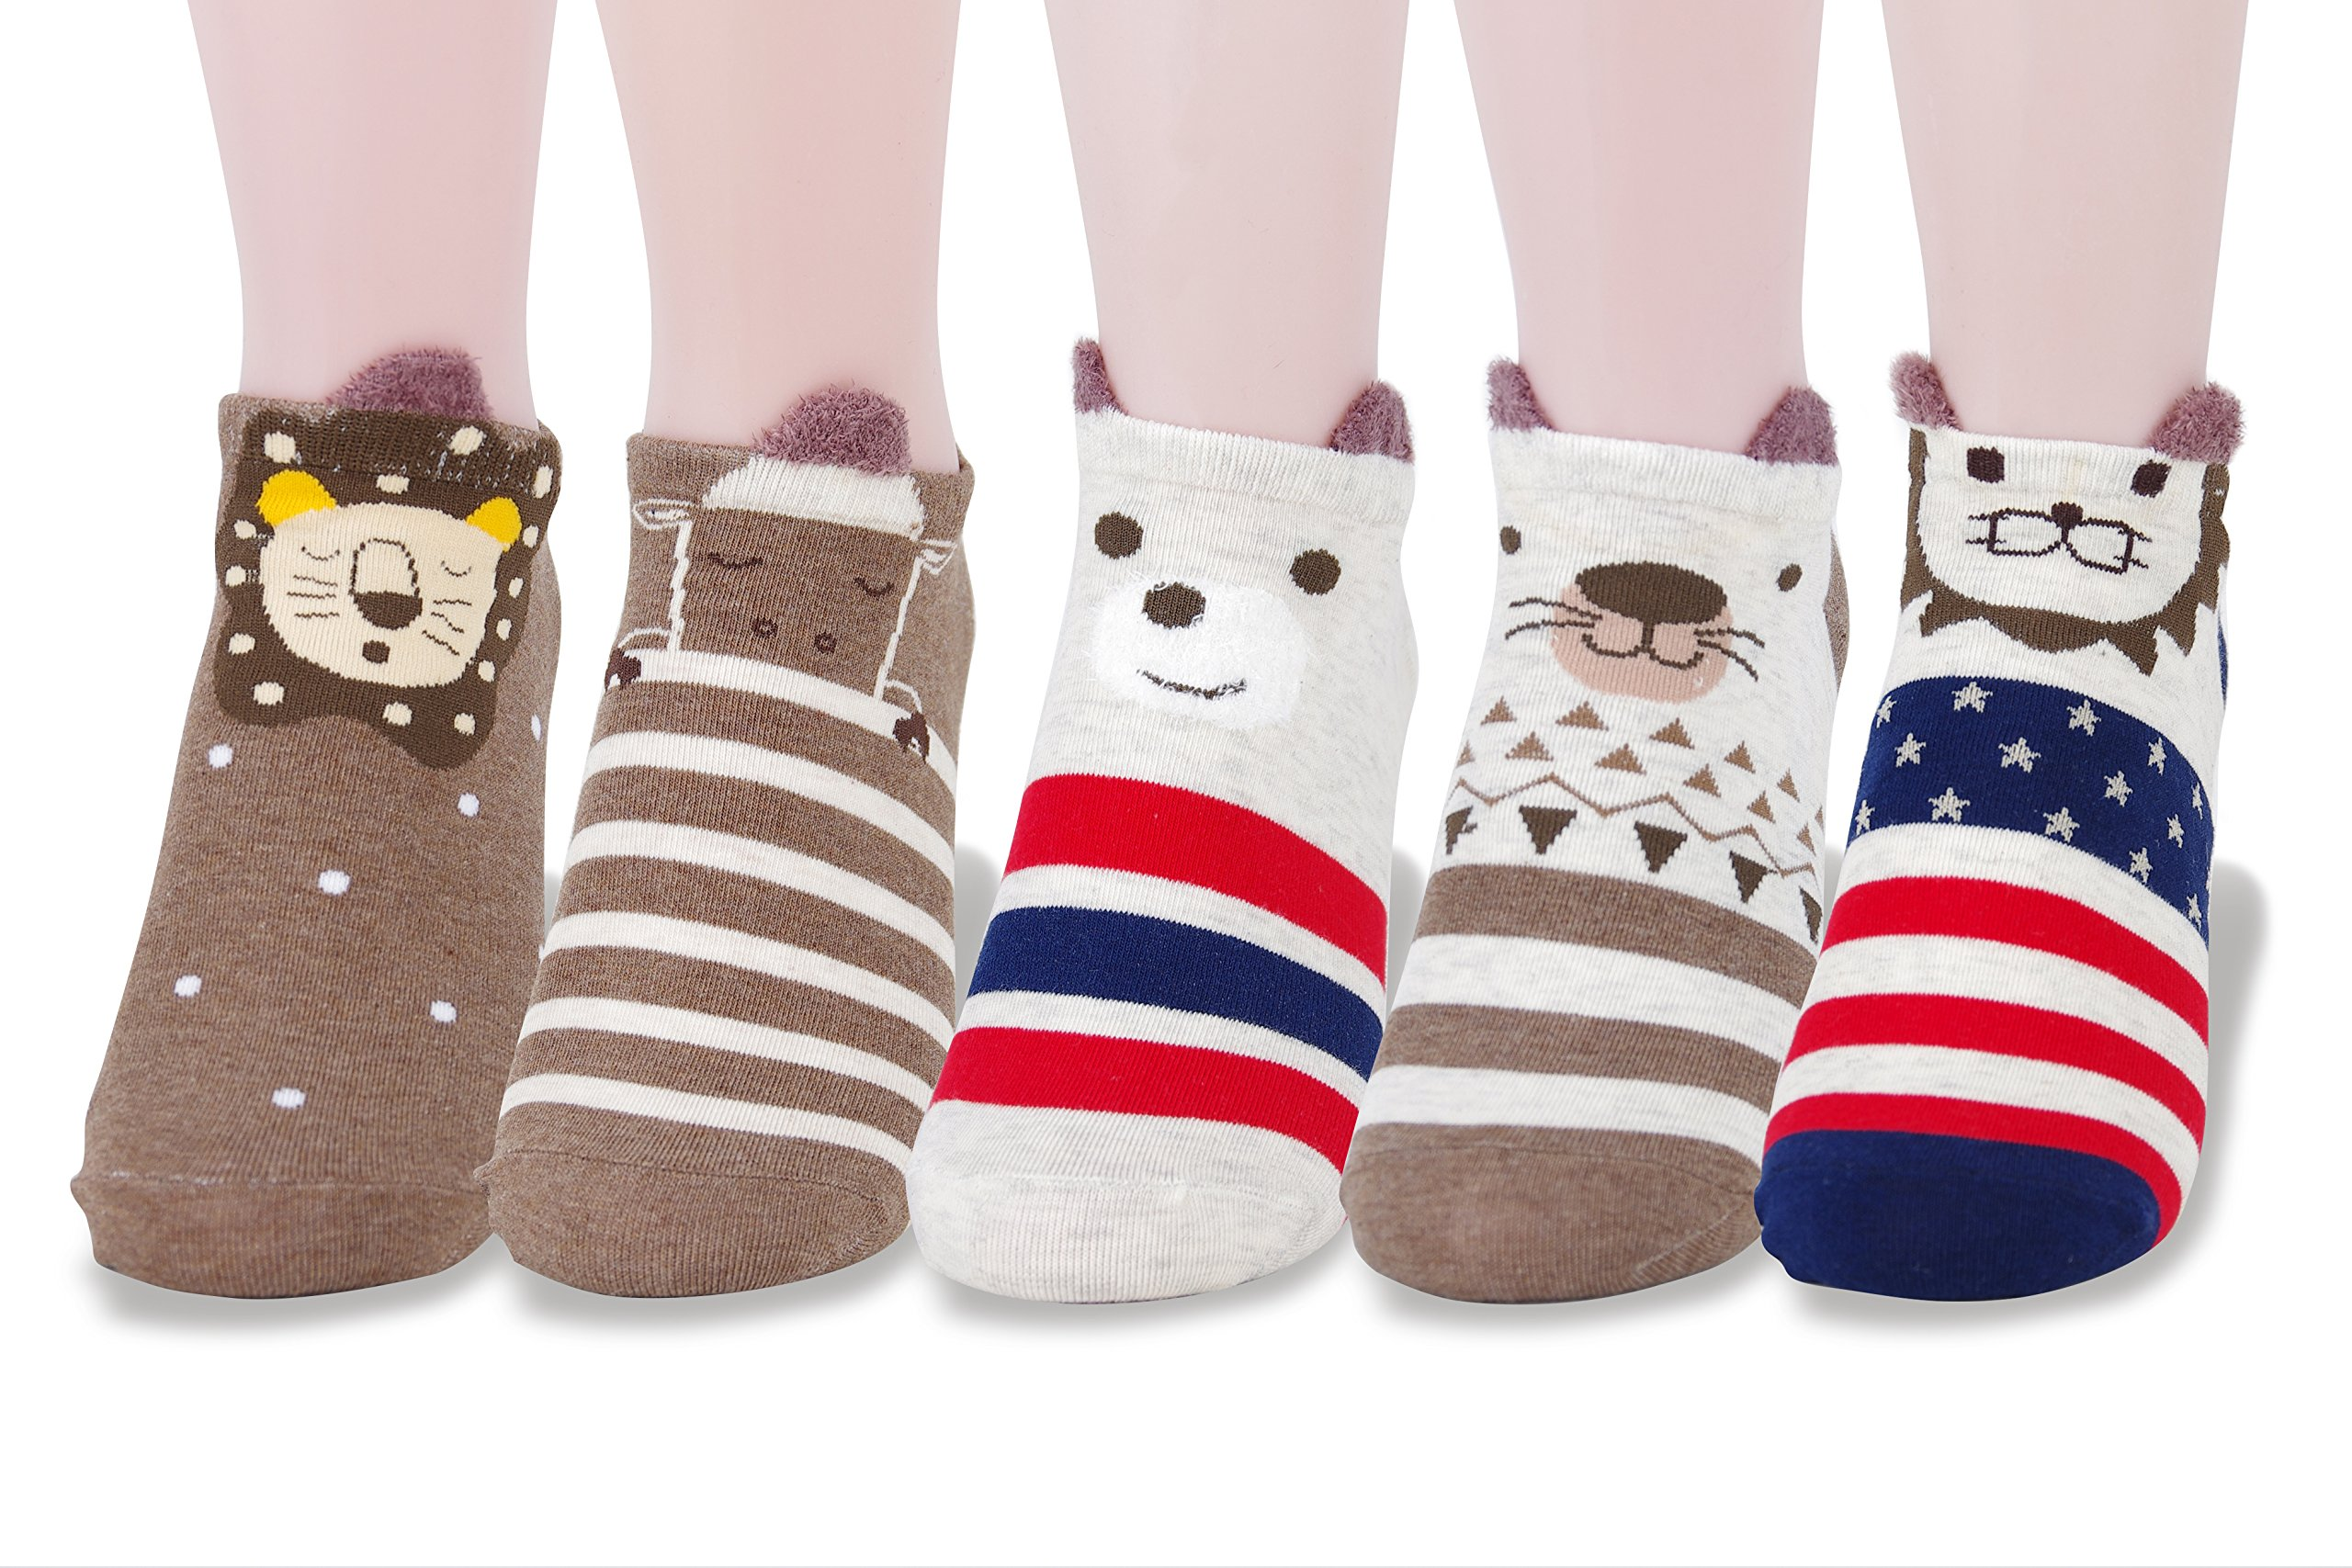 LL&Love 100% Cotton, Cute, Funny and Fashionable Casual Women's Low Cut Animal Socks (Style 11)